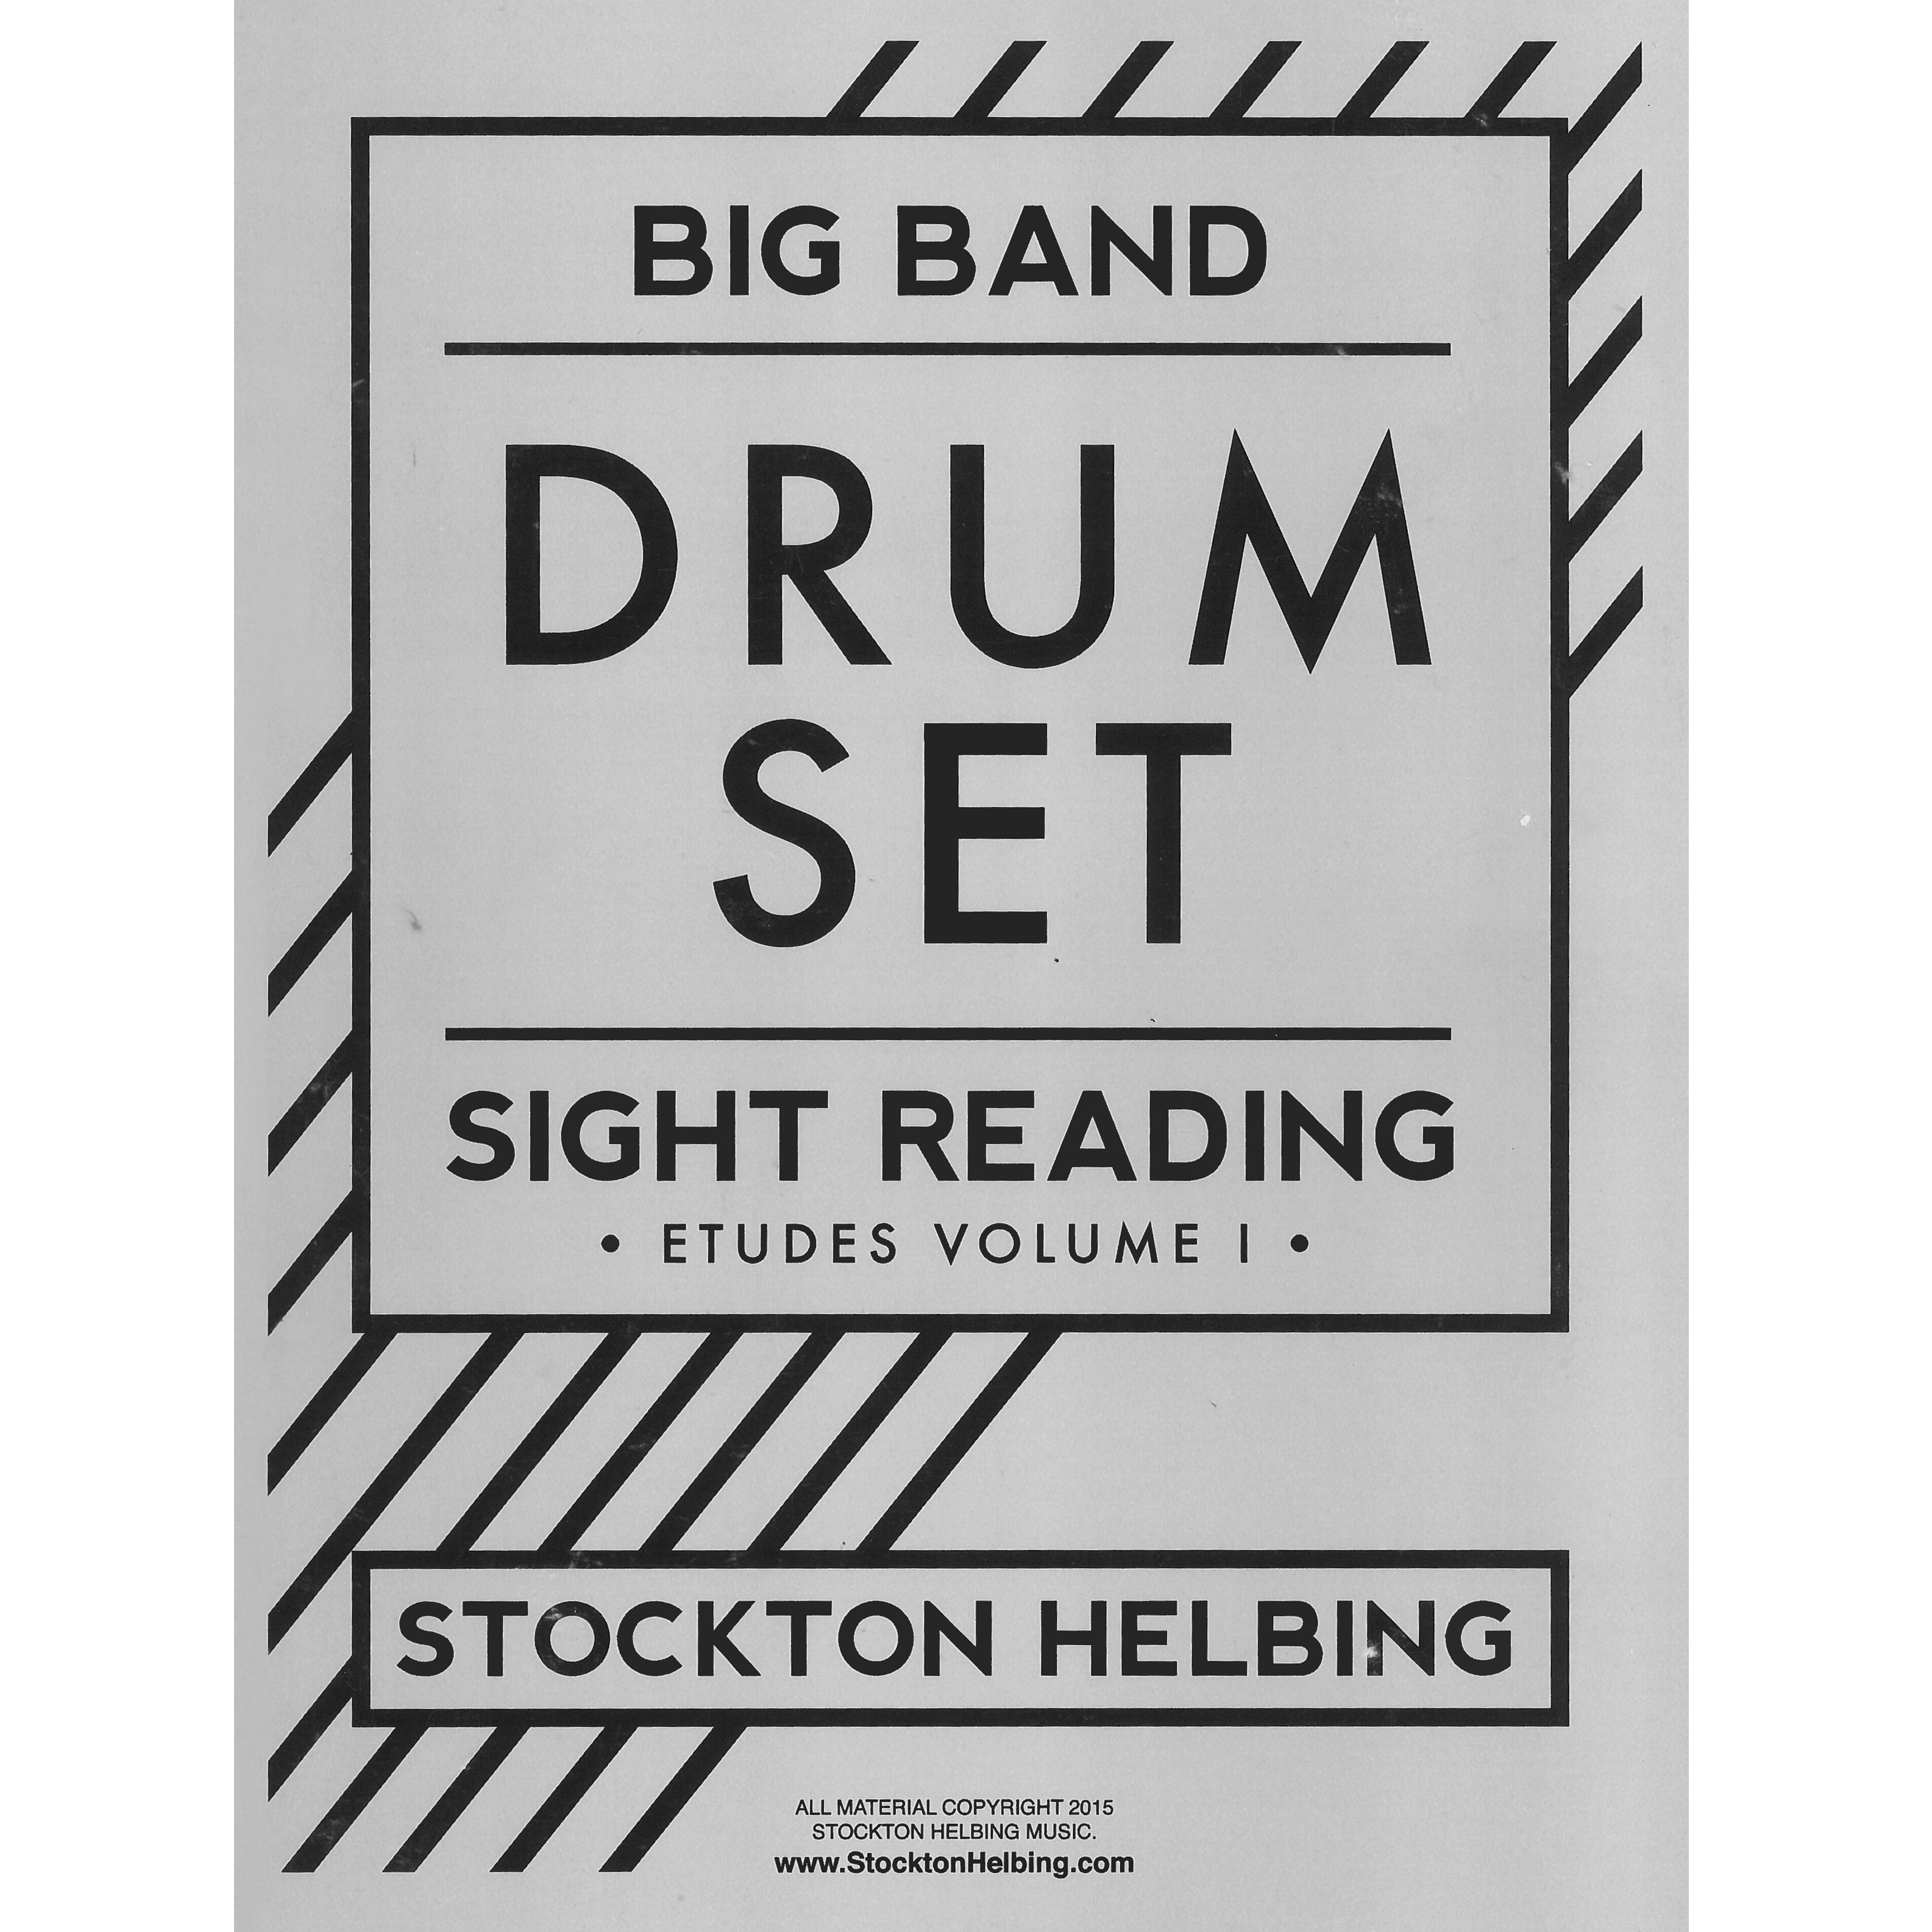 Big Band Drum Set Sight Reading Etudes Vol 1  by Stockton Helbing